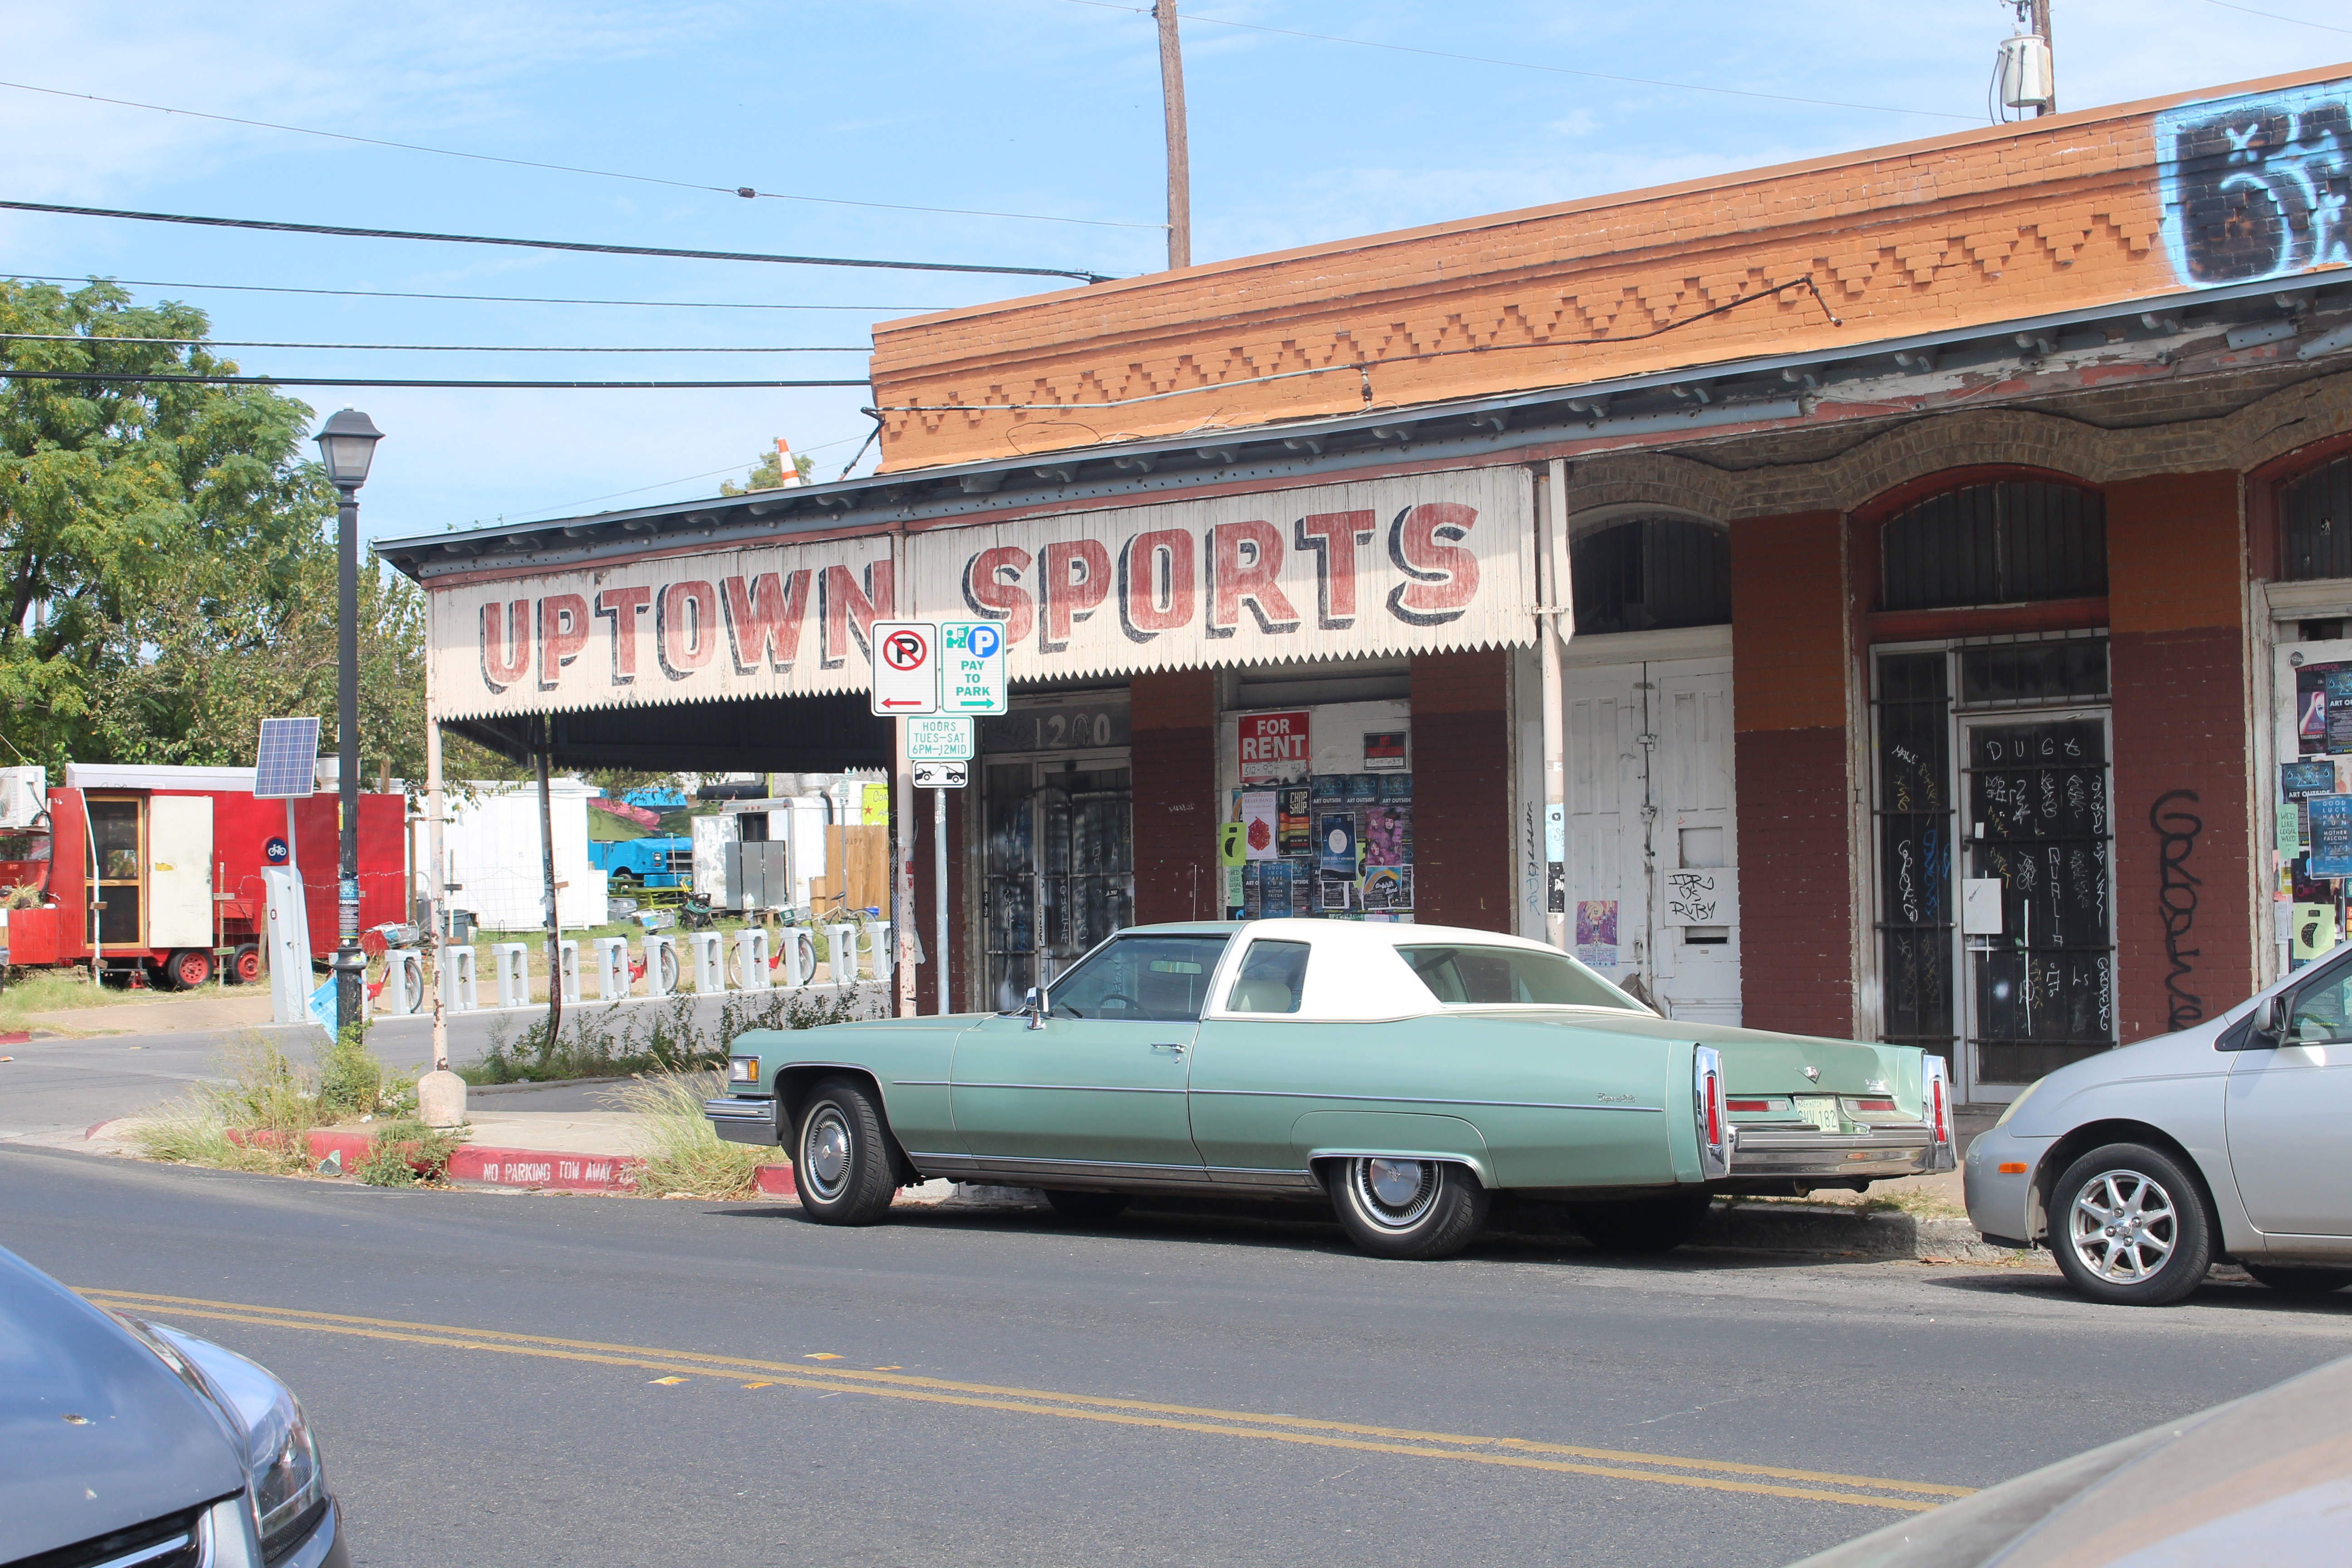 The vacant building that used to be Uptown Sports Bar sits on desirable location on E. sixth st.